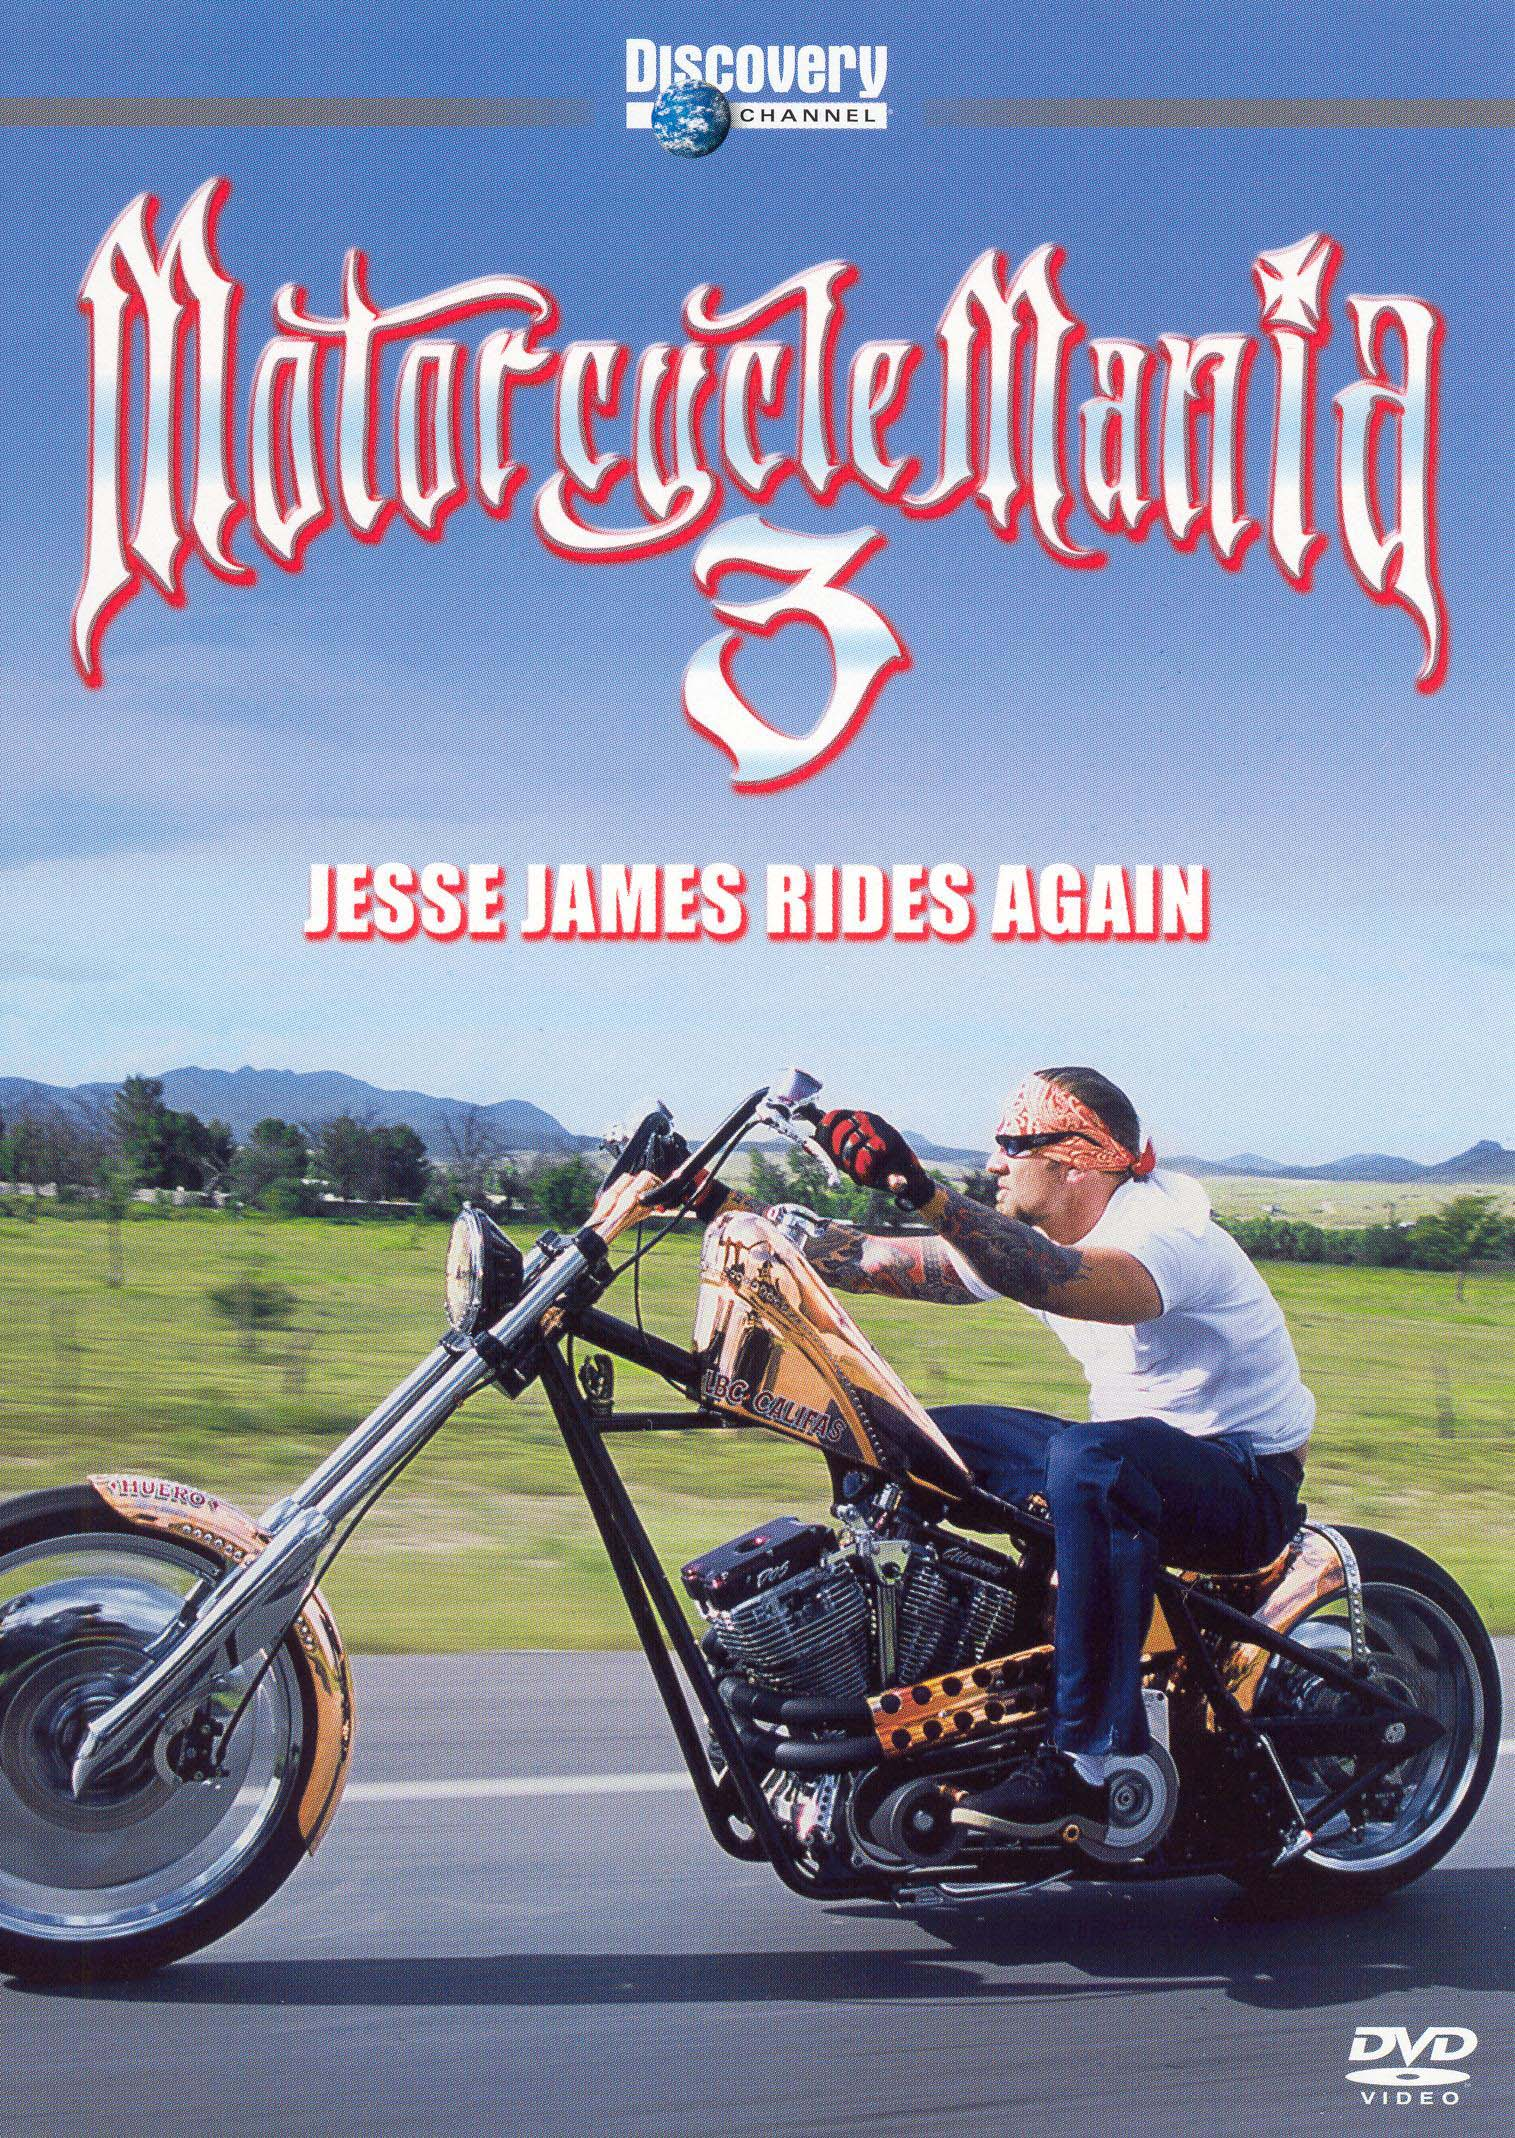 motorcycle mania vol 3 jesse james rides again 2005